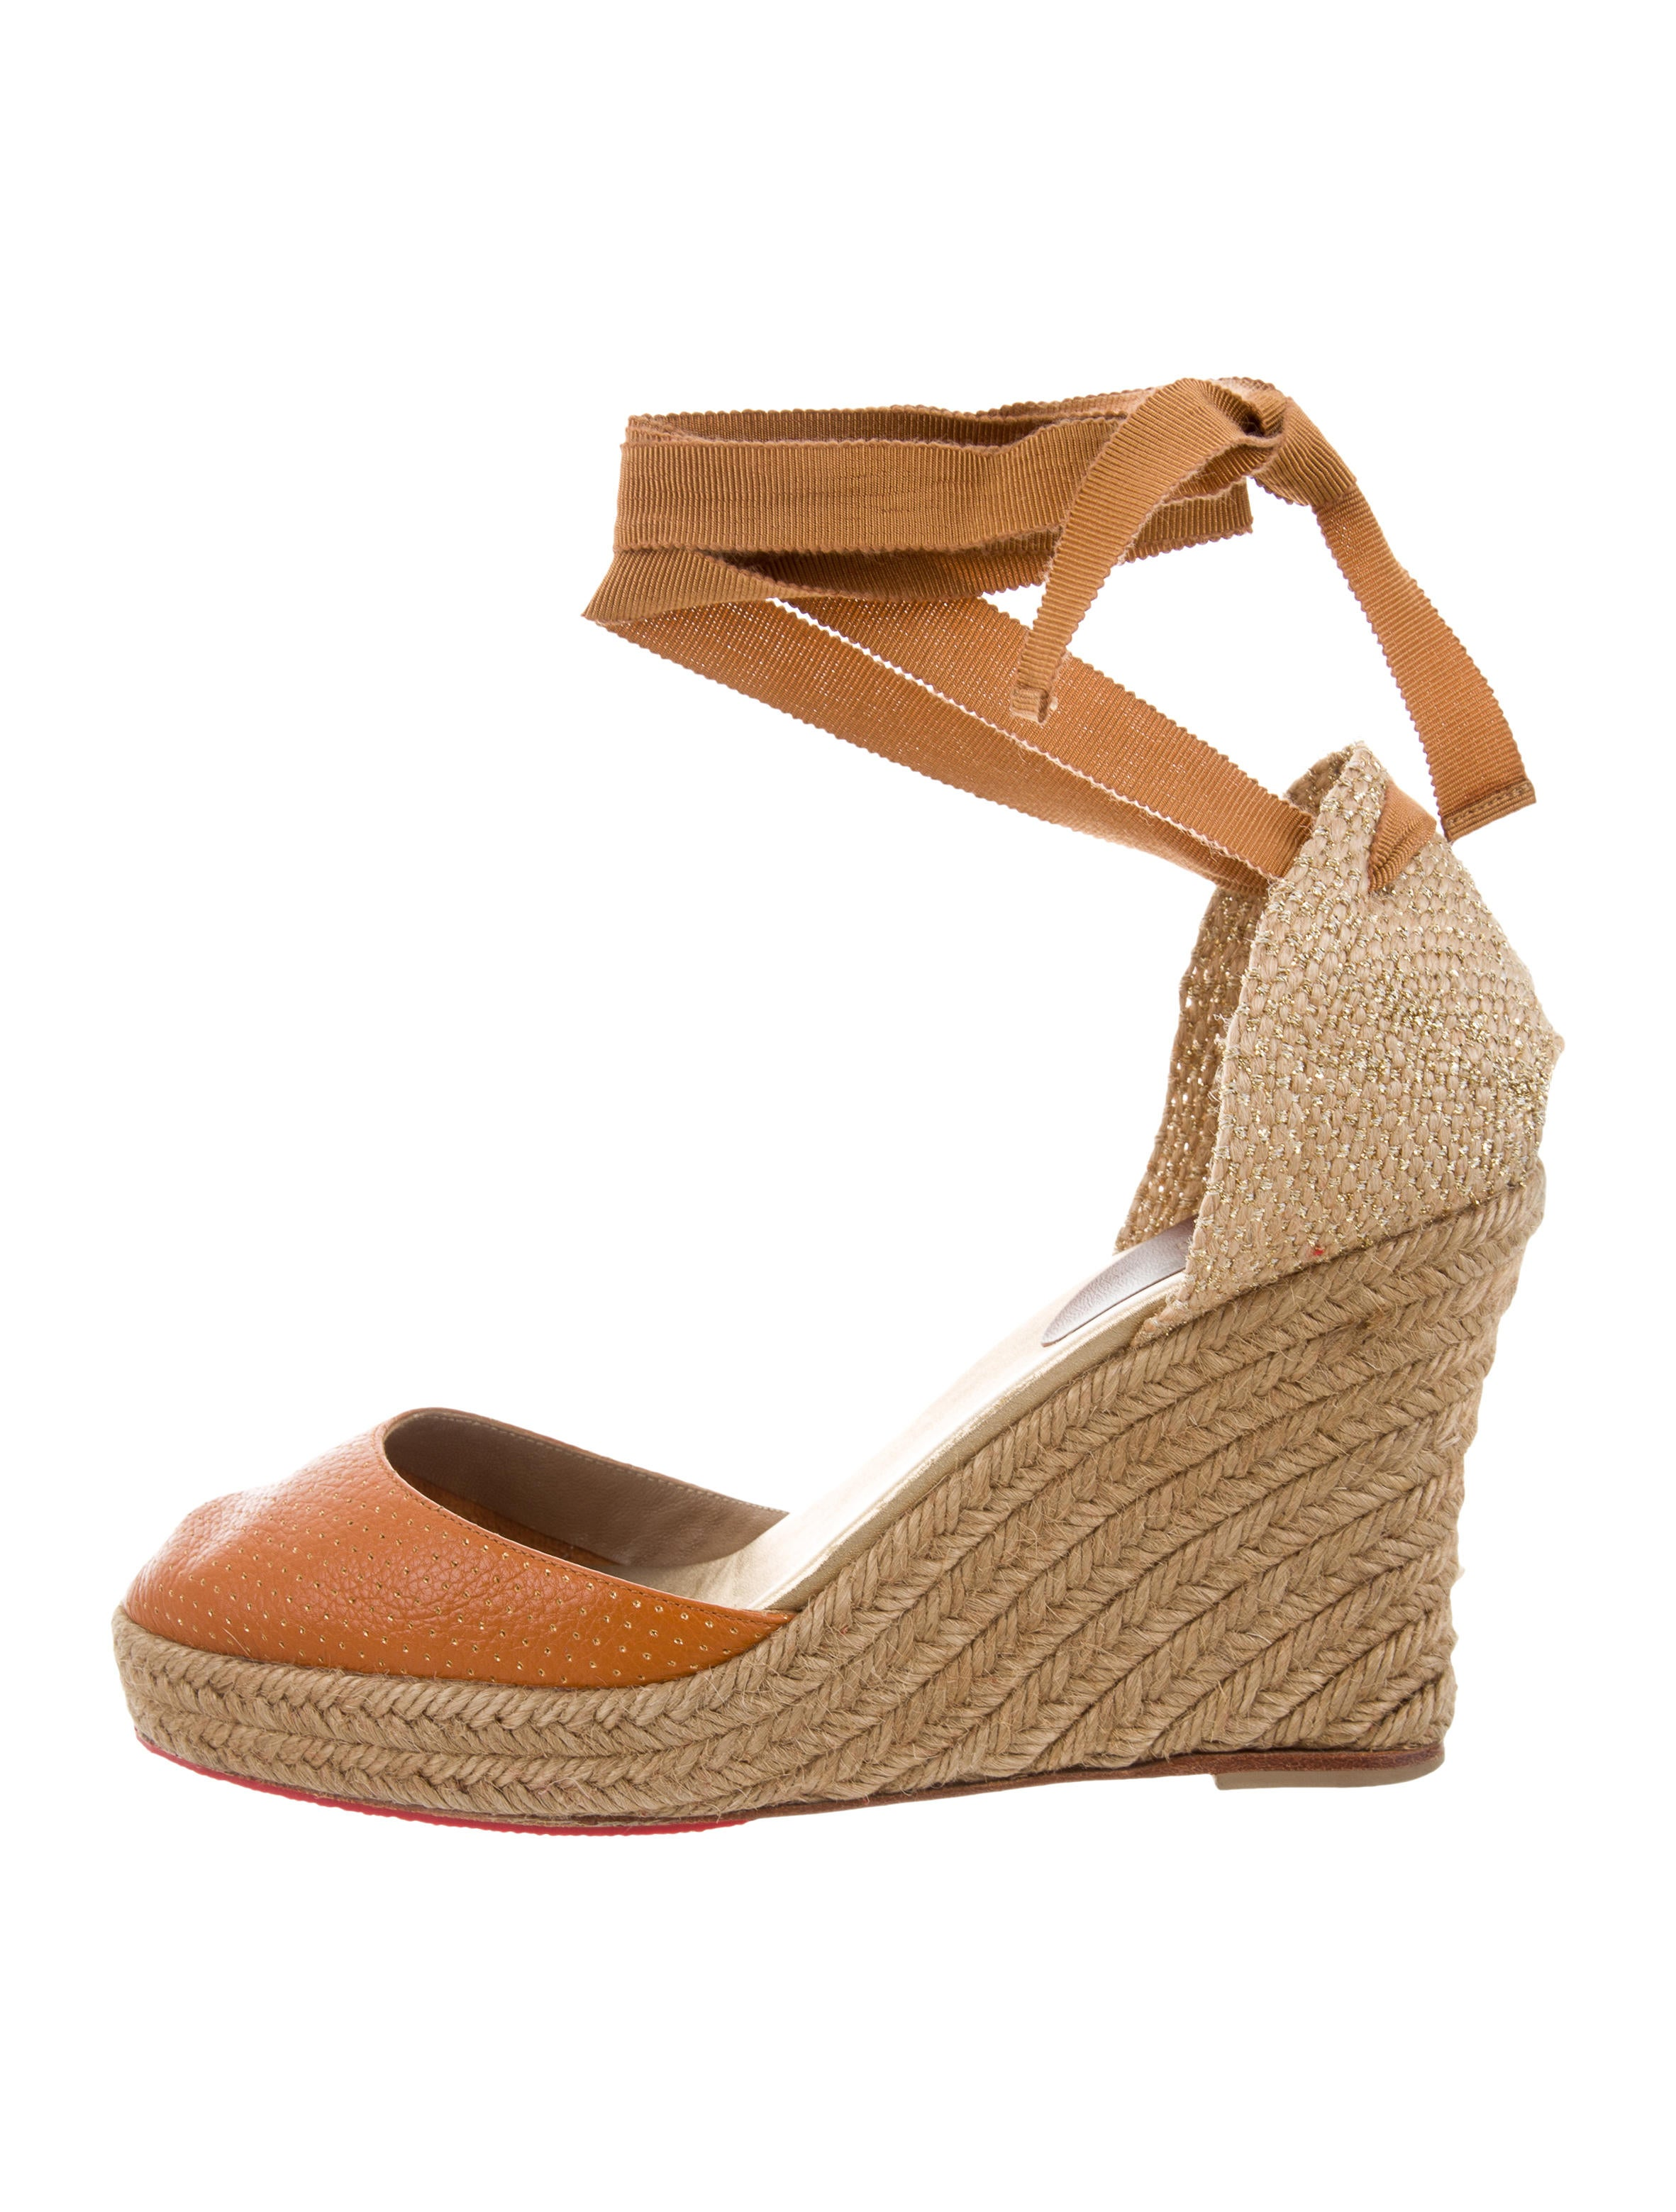 buy cheap outlet store cheap fake Christian Louboutin Lace-Up Espadrille Wedges with credit card online low shipping sale online Manchester sale online udjFU4